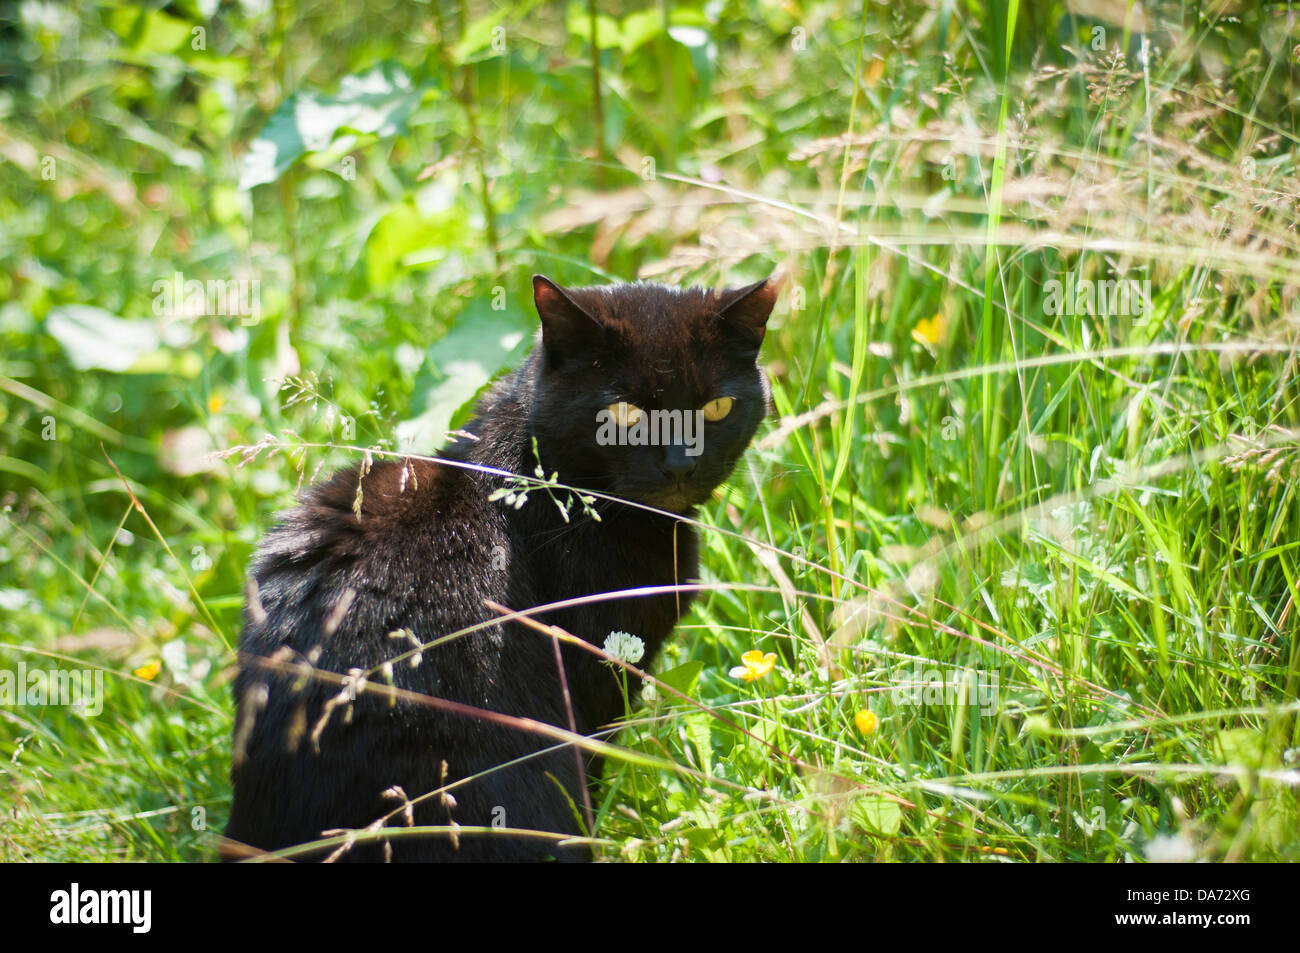 black cat hunting stockfotos black cat hunting bilder alamy. Black Bedroom Furniture Sets. Home Design Ideas